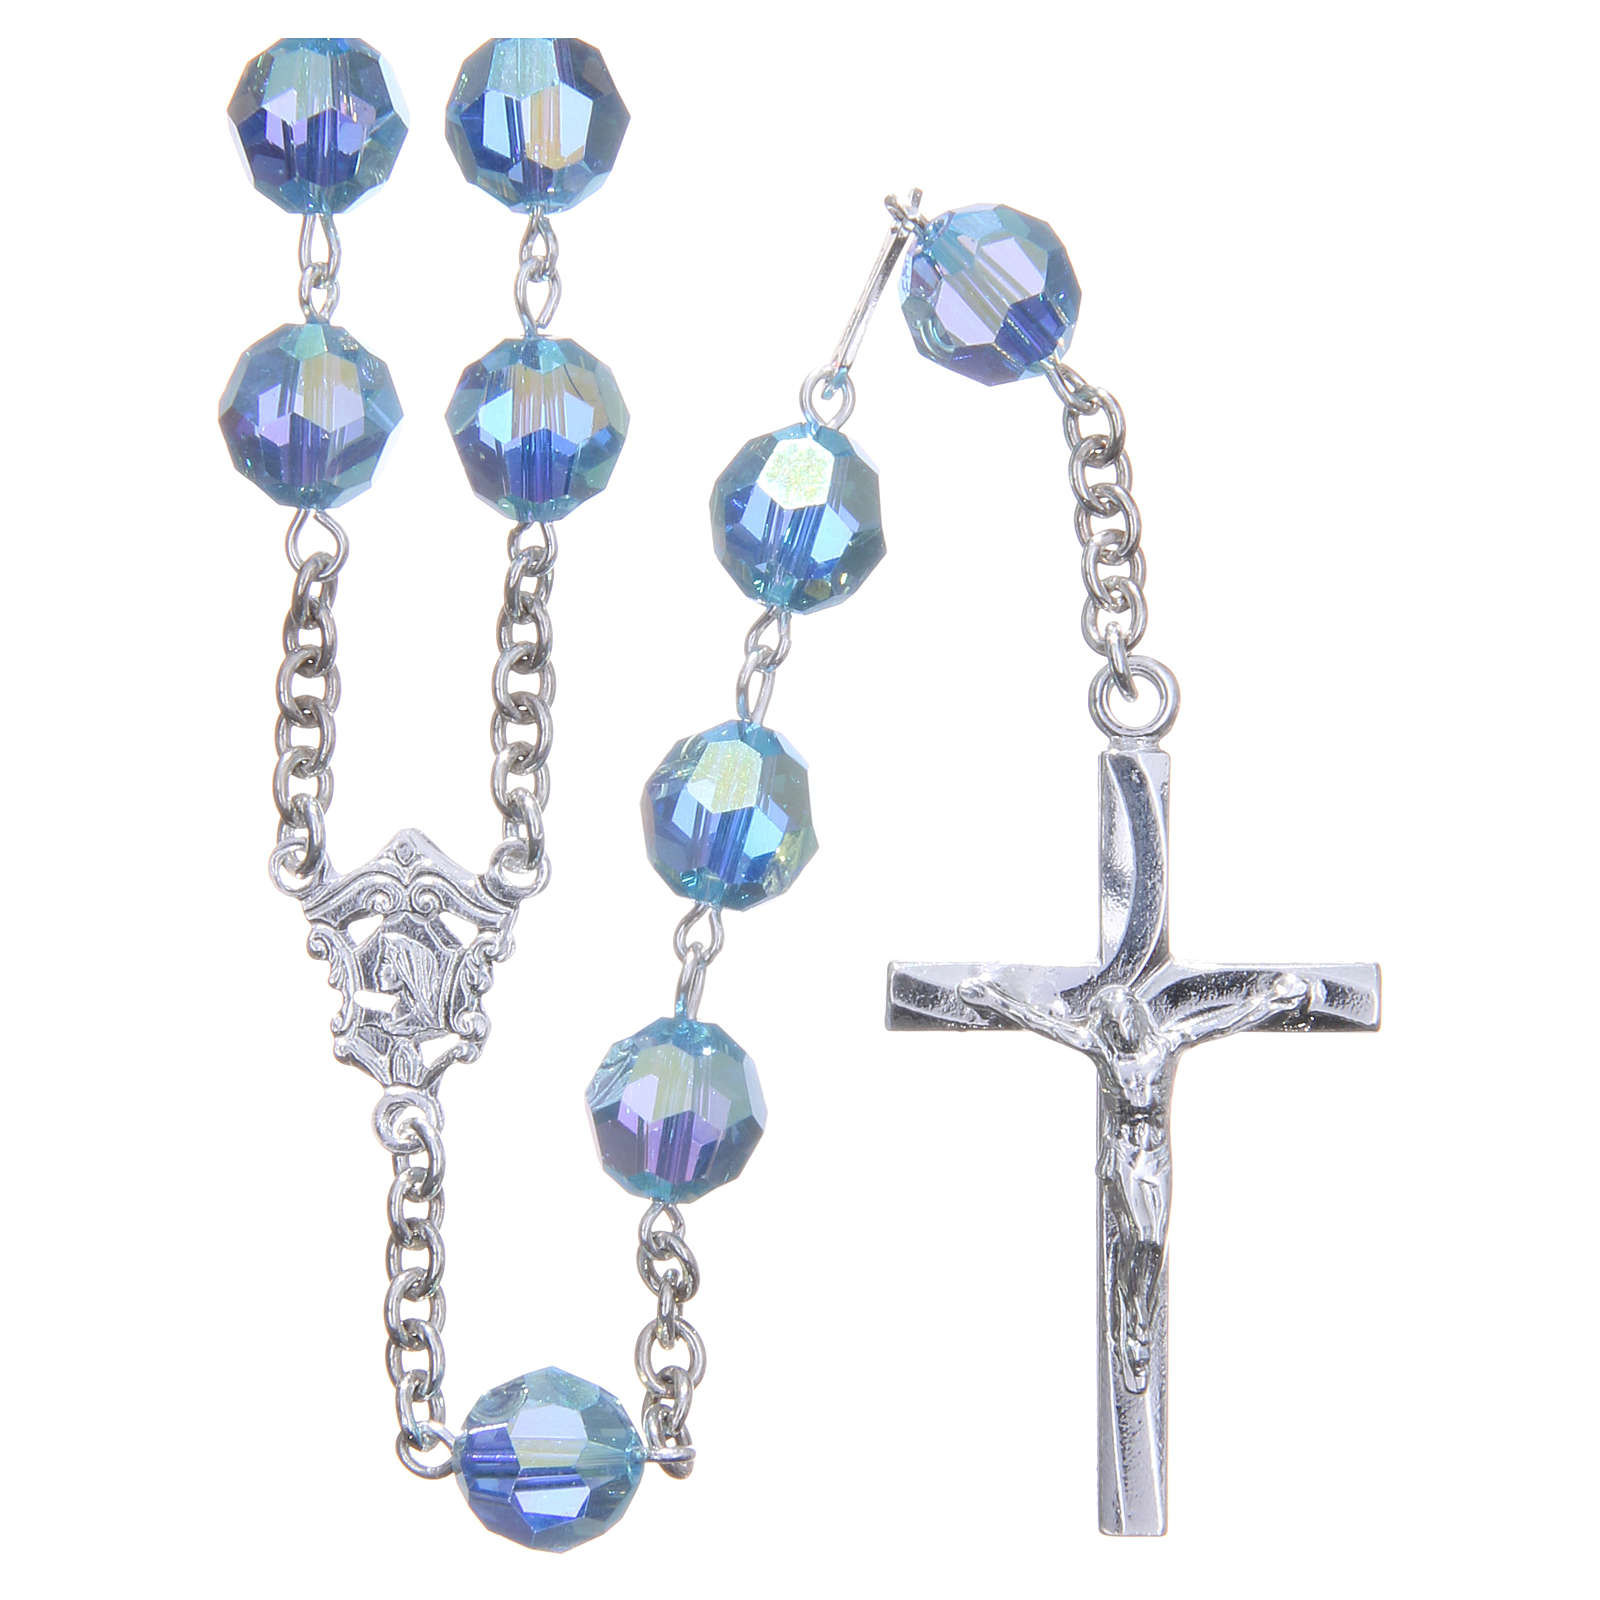 Rosary in 800 silver and sky blue Swarowski crystal grains measuring 8mm 4